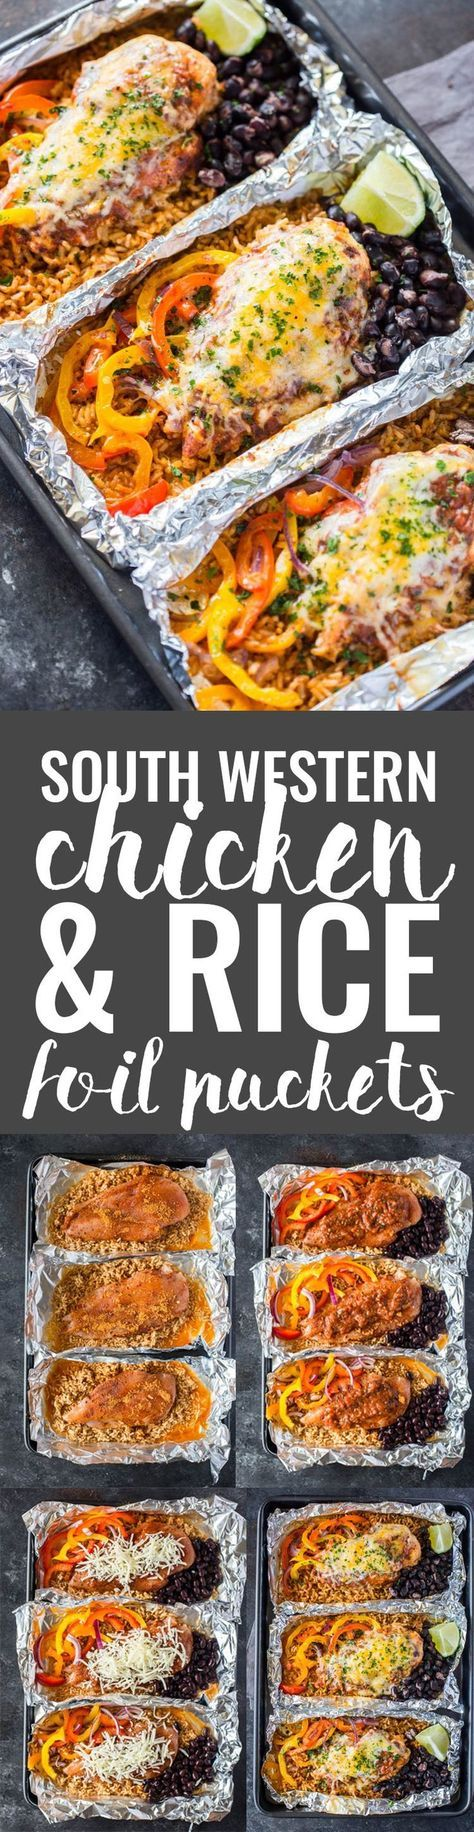 Southwestern Chicken & Rice Foil Packets